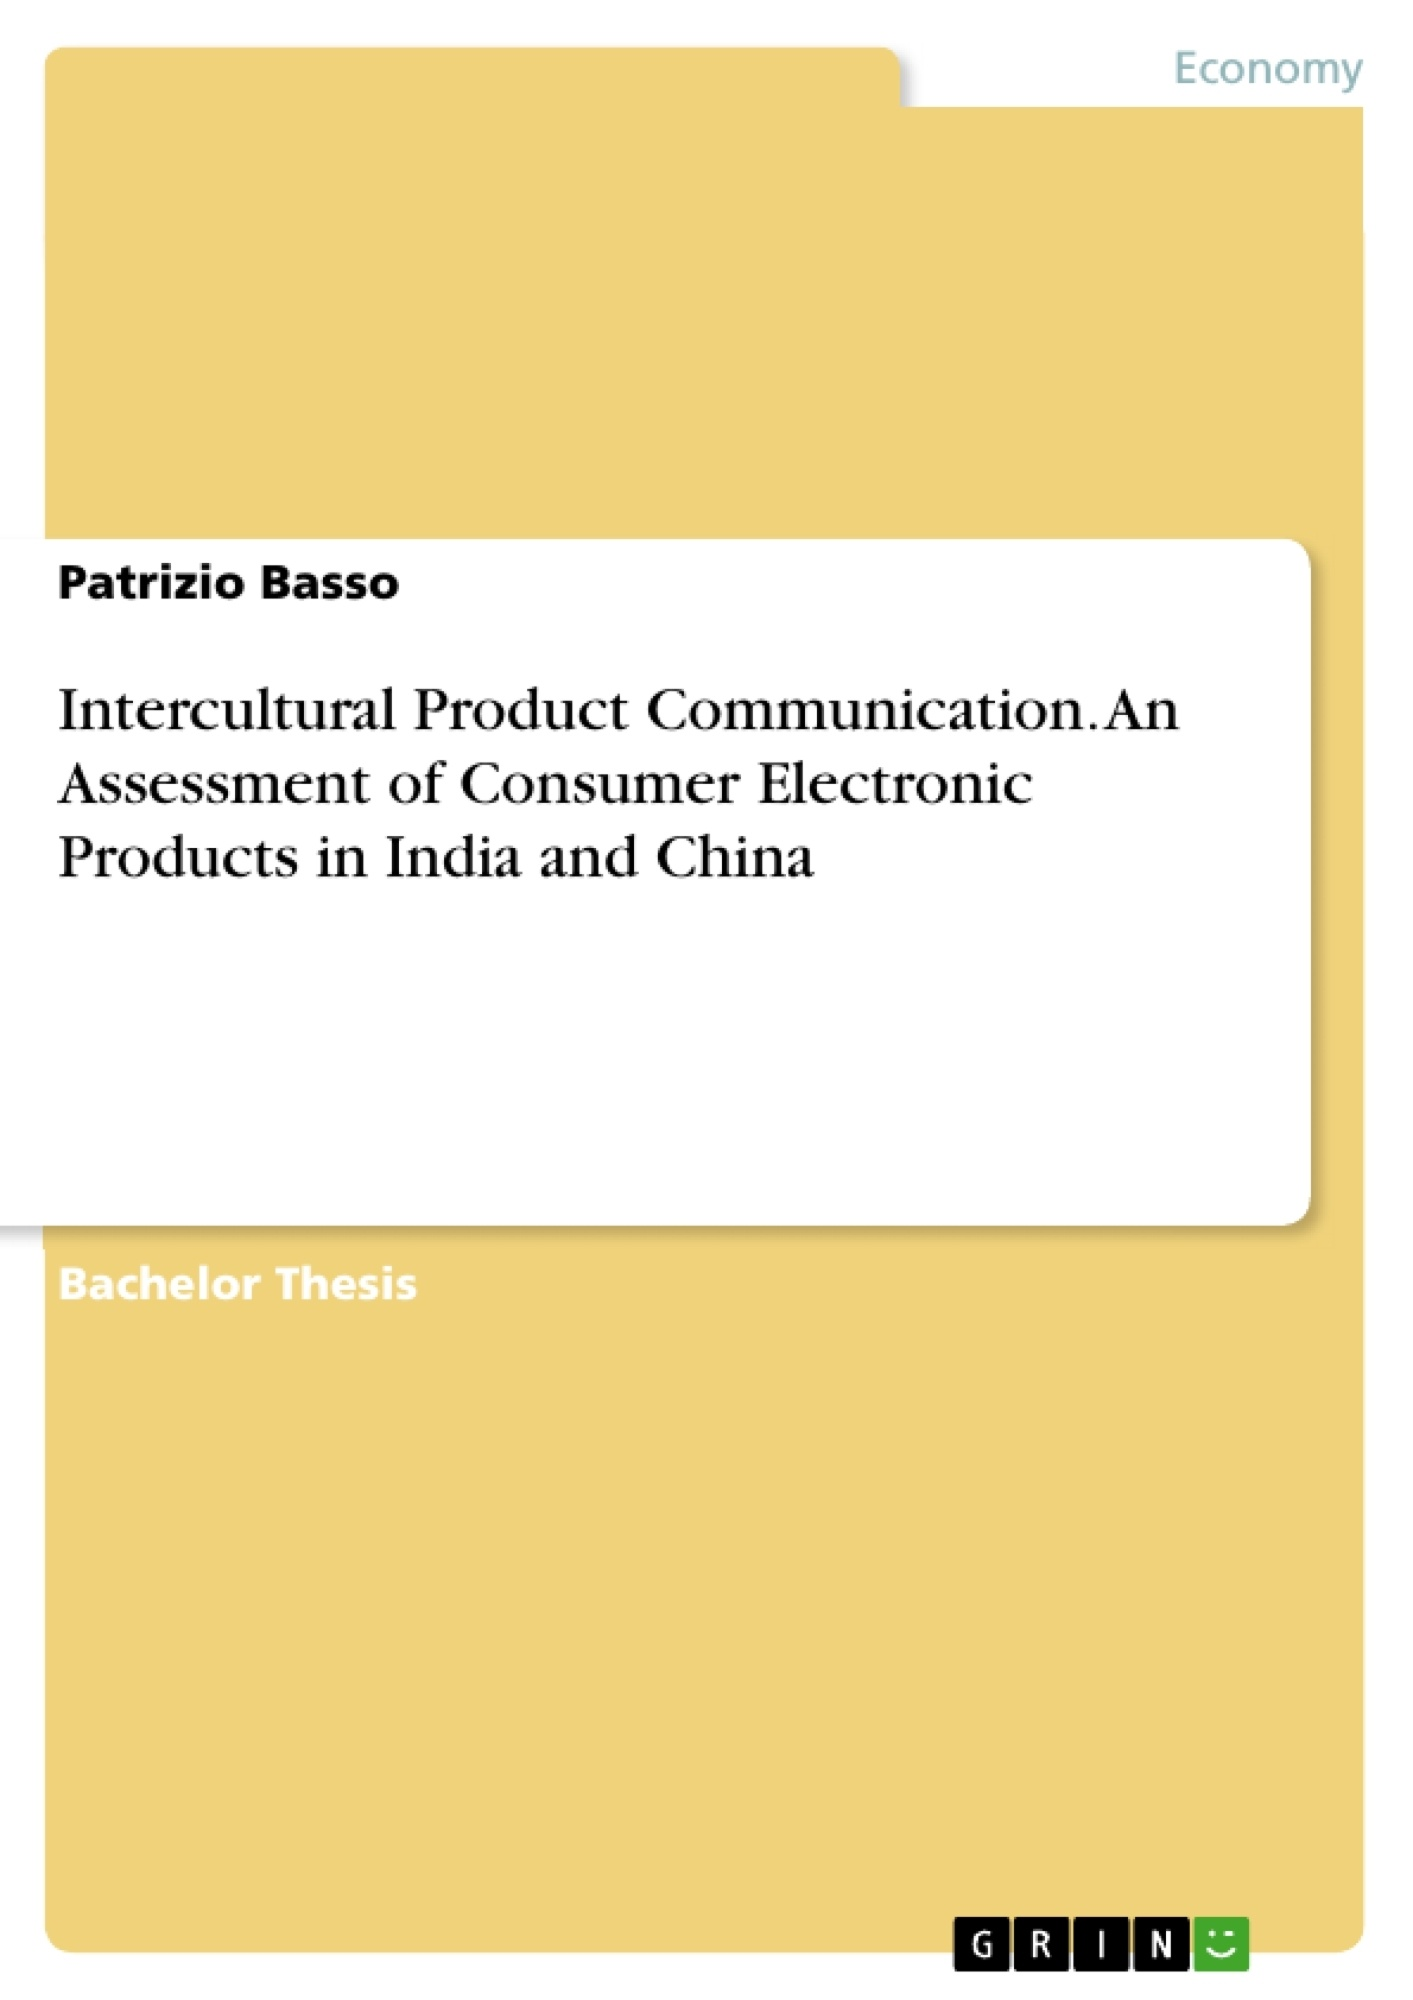 Title: Intercultural Product Communication. An Assessment of Consumer Electronic Products in India and China